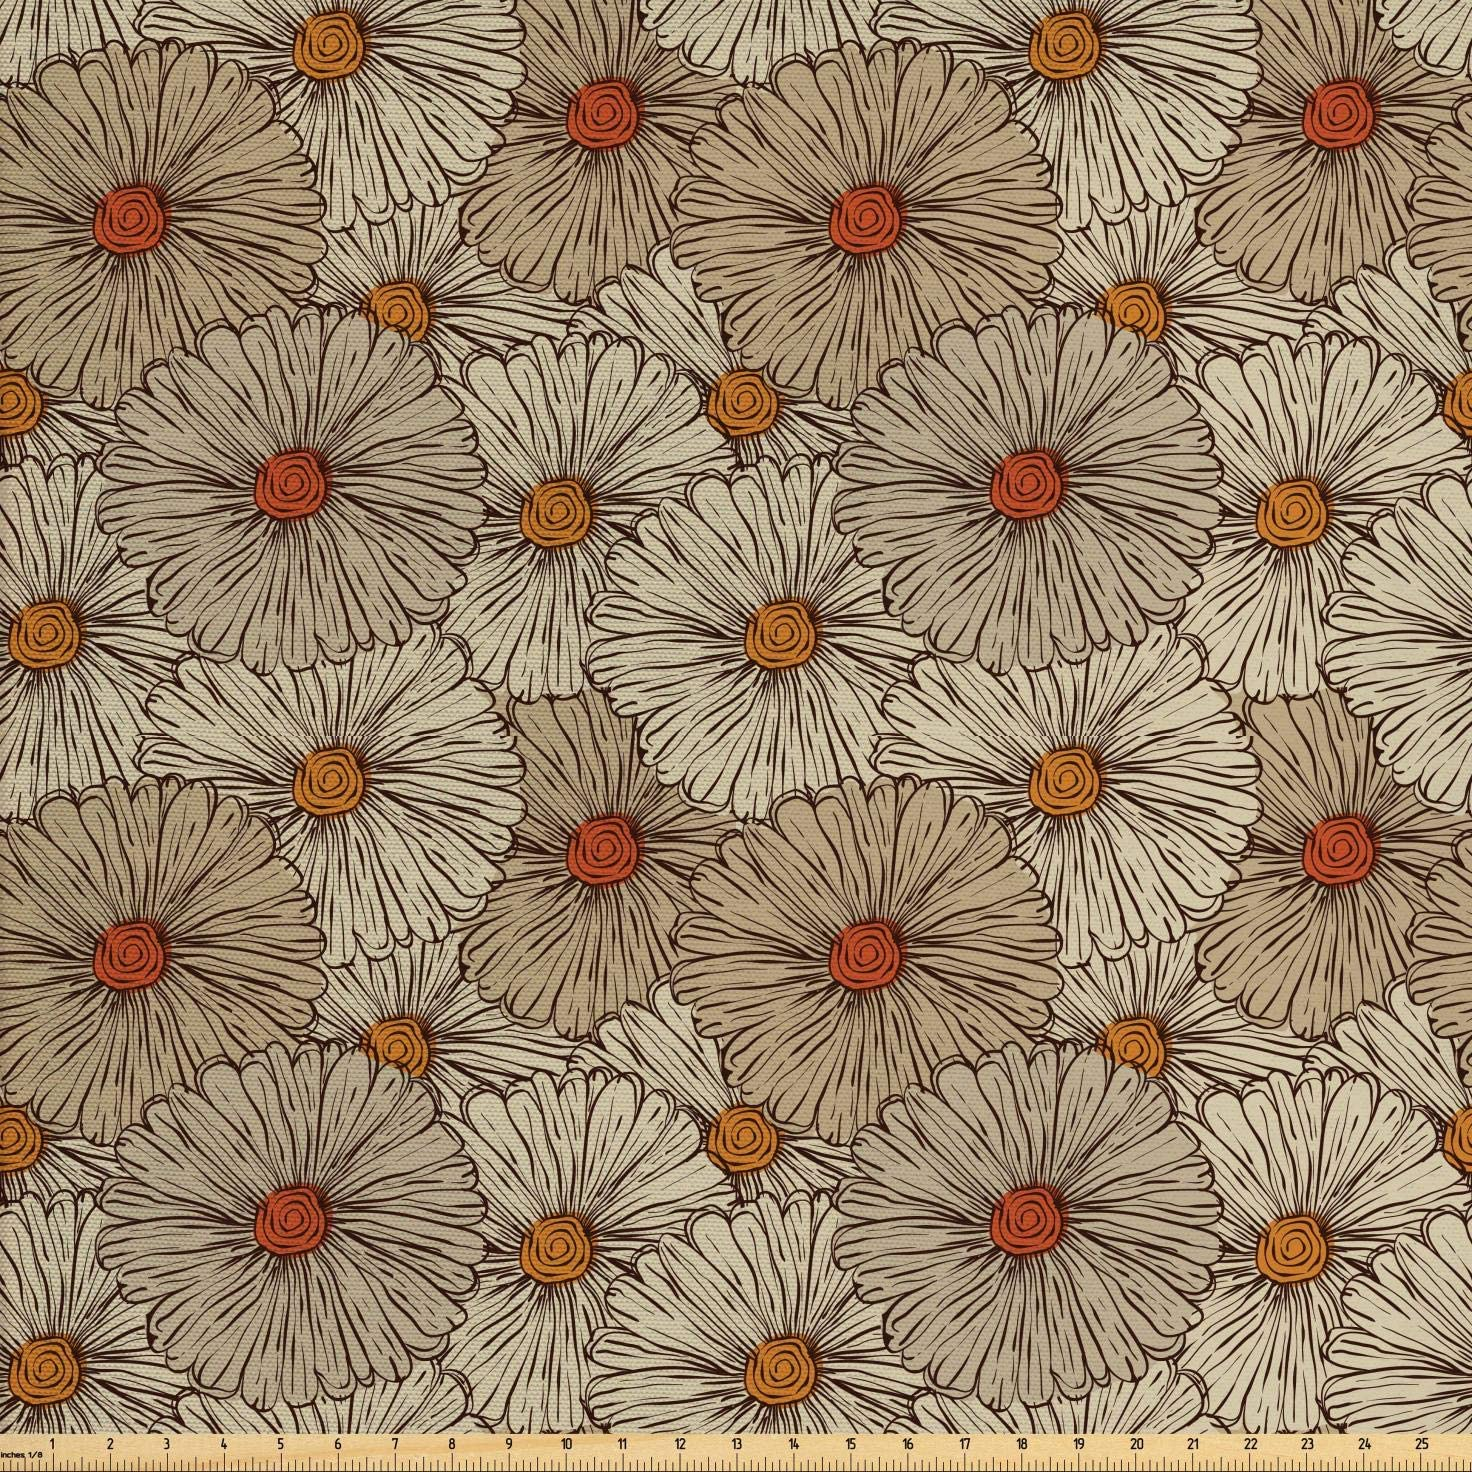 Ambesonne Vintage Fabric by The Yard, Sketch Art Style Gerbera Daisies Abstract Flowers Autumn Garden Flourish, Decorative Fabric for Upholstery and Home Accents, 3 Yards, Marigold Orange